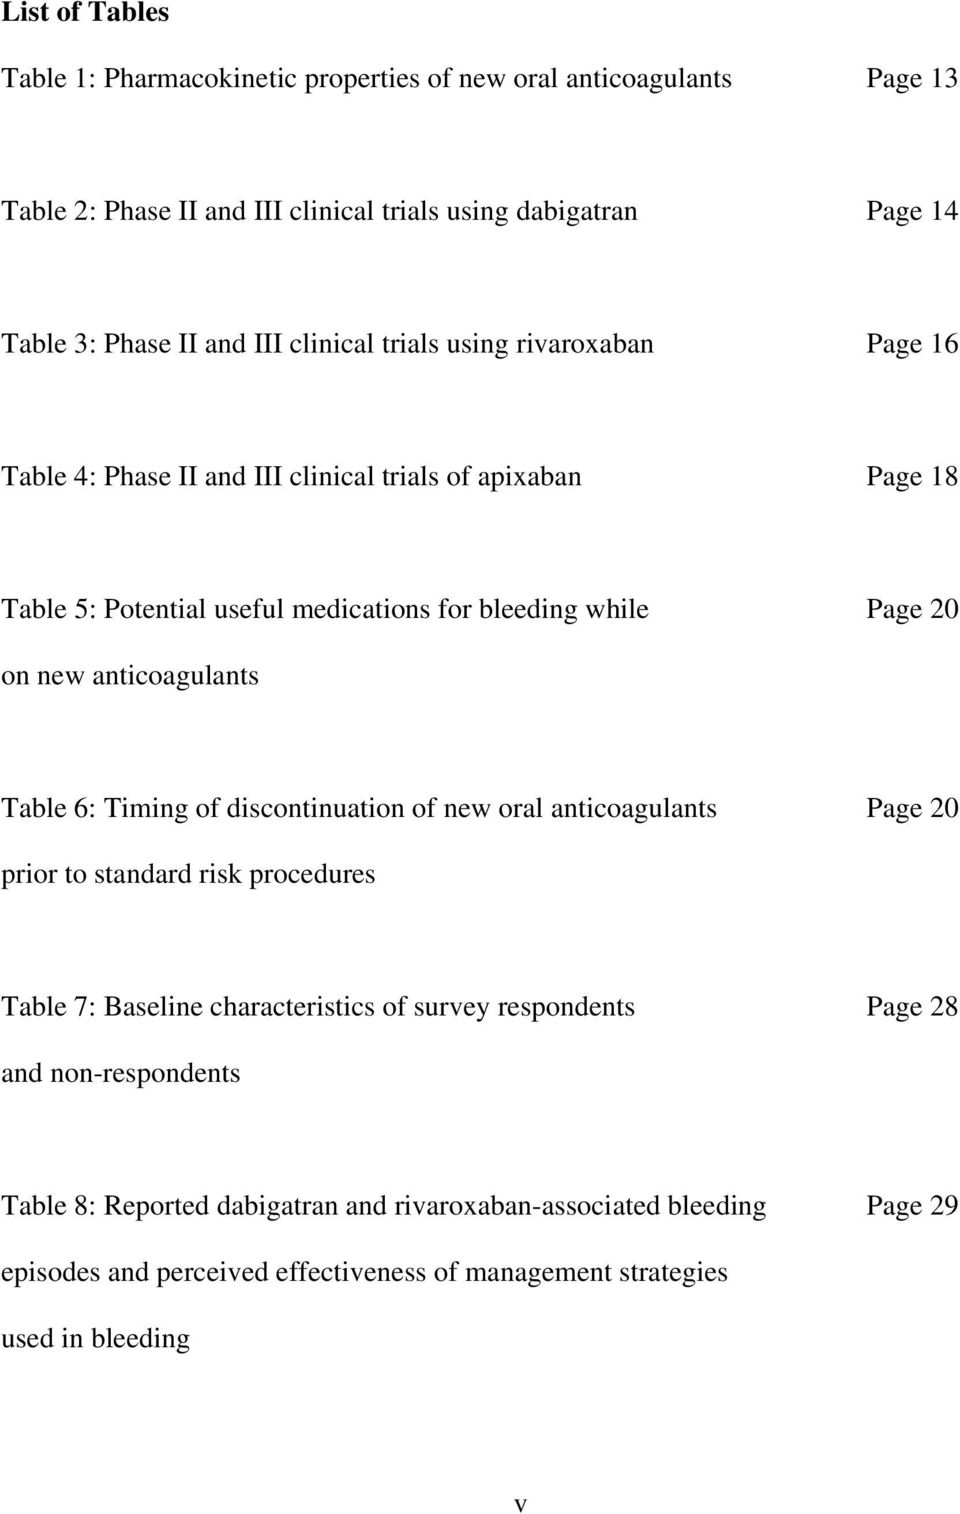 new anticoagulants Table 6: Timing of discontinuation of new oral anticoagulants Page 20 prior to standard risk procedures Table 7: Baseline characteristics of survey